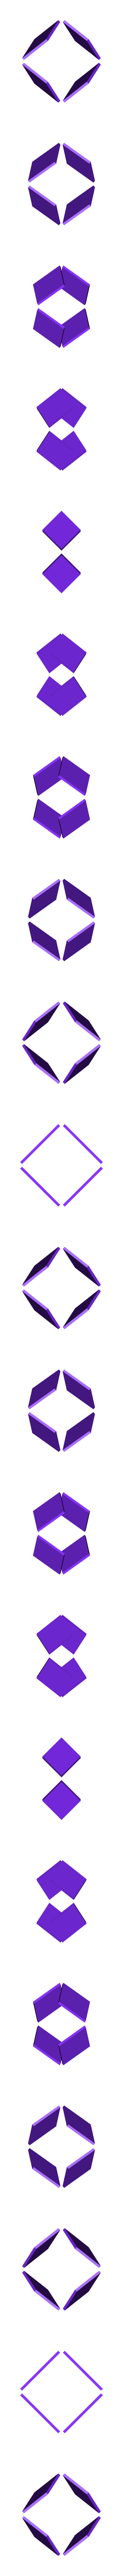 rhombic_dohecahedron_color_2.stl Download free STL file Cube Illusion (Rhombic Dodecahedron) • 3D printer template, MosaicManufacturing